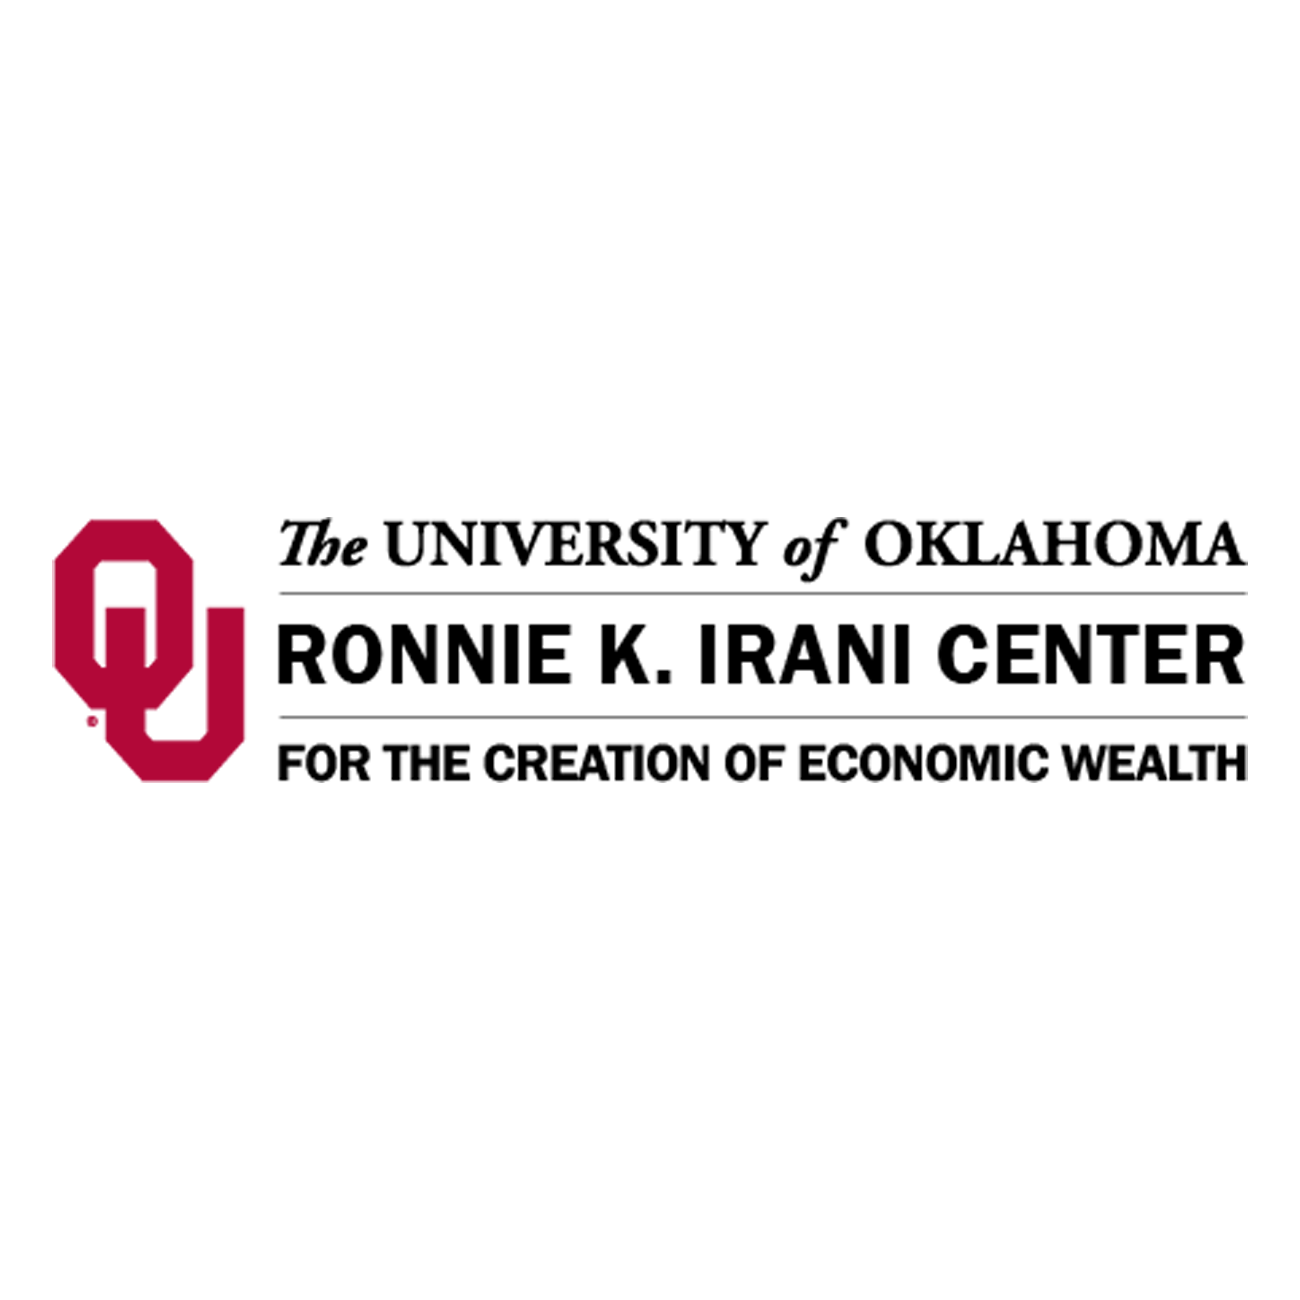 OU Center for the Creation of Economic Wealth (I-CCEW)